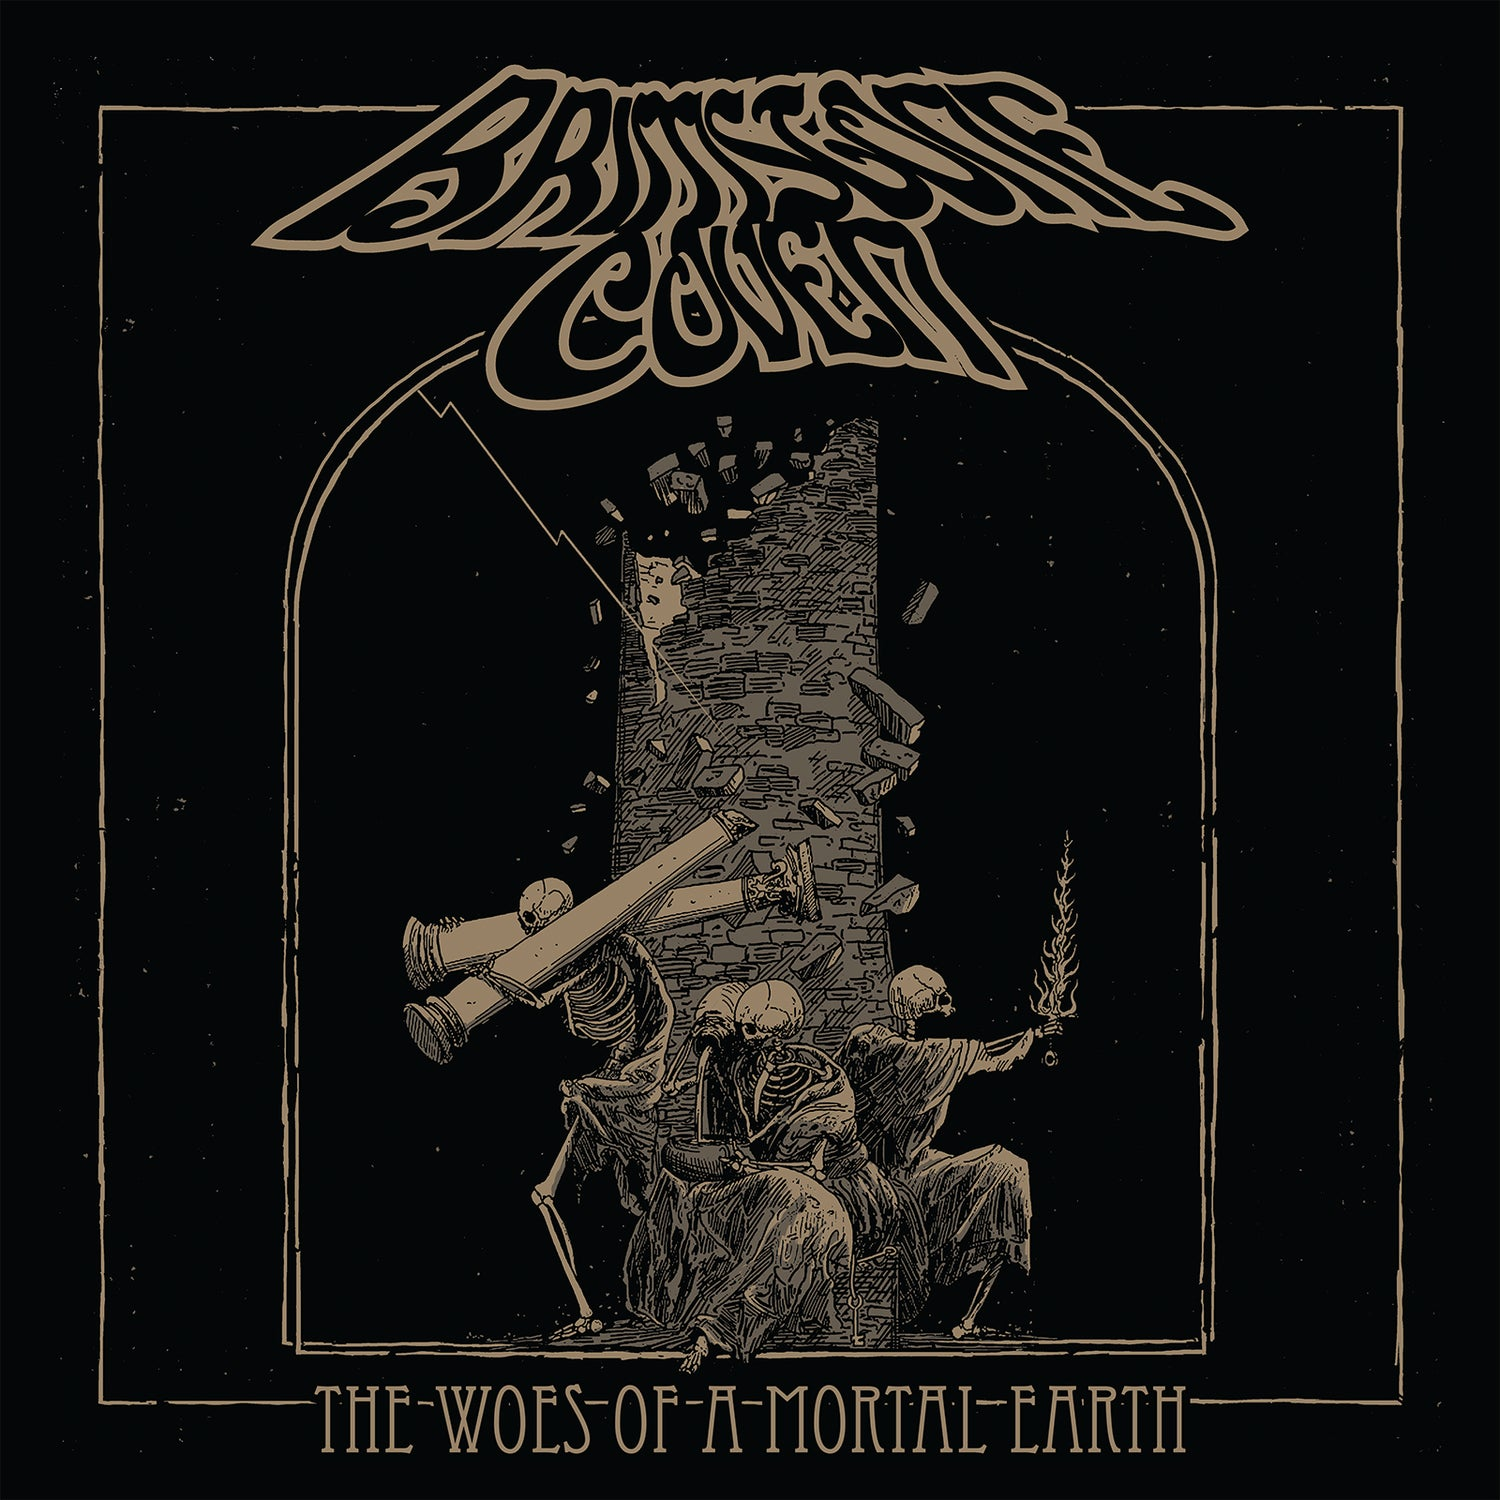 Image of Brimstone Coven - The Woes of a Mortal Earth Deluxe Vinyl Editions